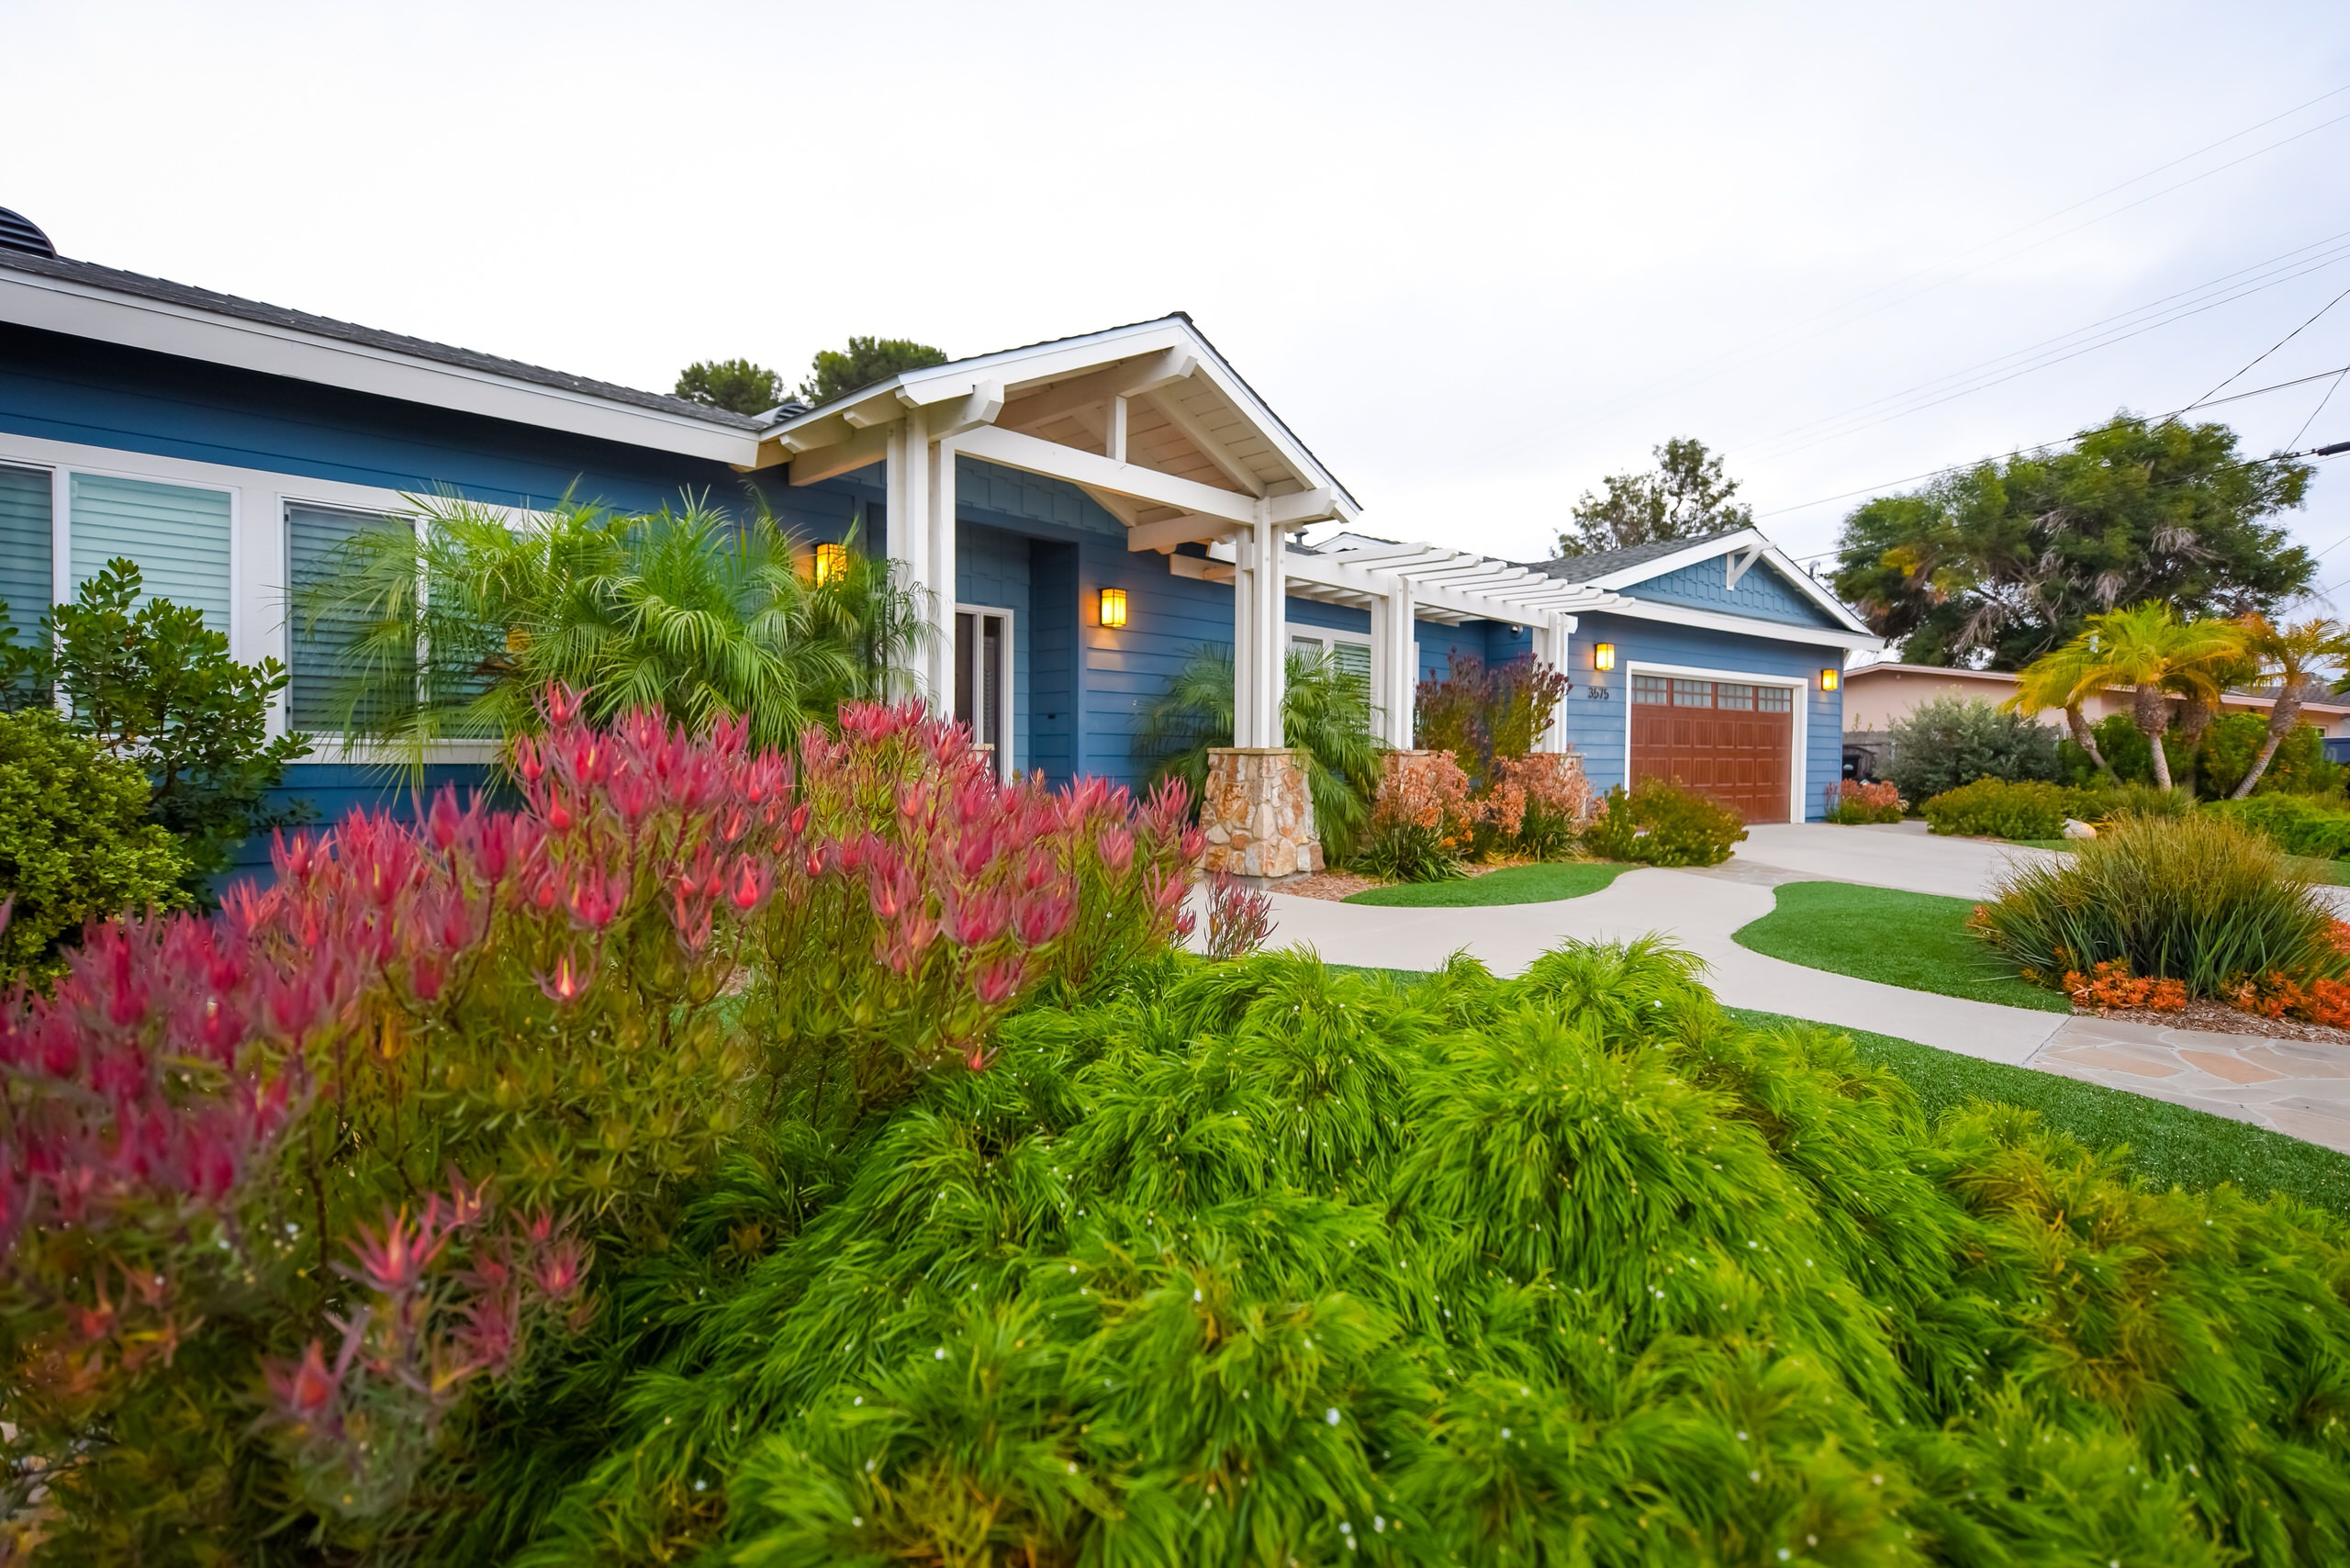 Colorful Plants in Front Yard Compliment House Color